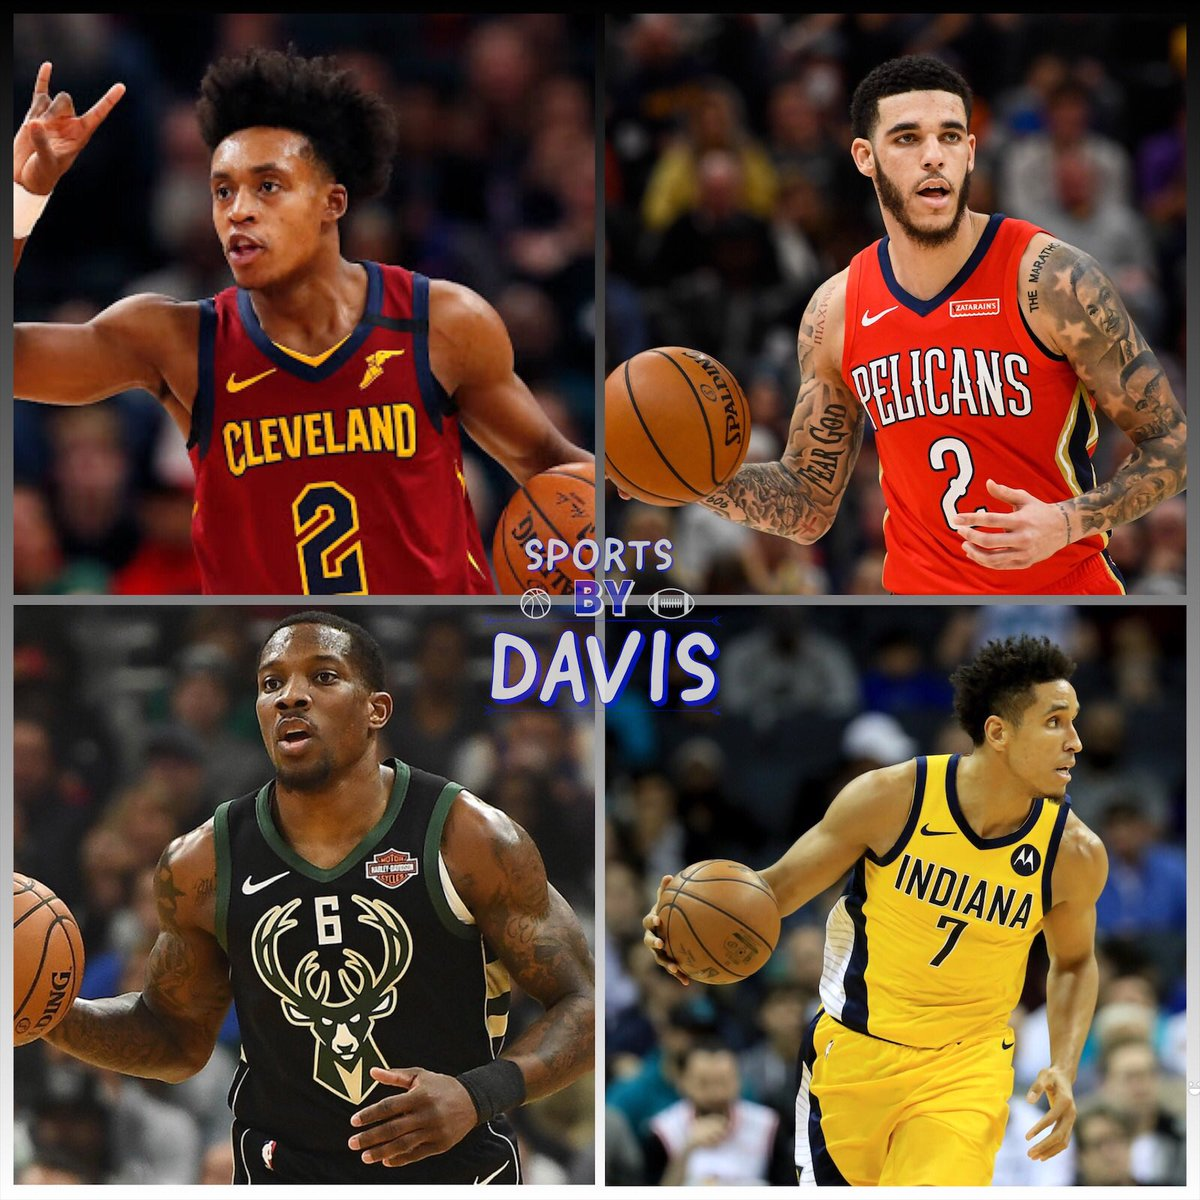 Rank these NBA Guards 1-4 as of right now and Go!   #NBA #NBABasketball #NBA2020 #Cavaliers #Pelicans #Ball #Lonzo #Bucks #Pacerspic.twitter.com/wyC2Y8x15L